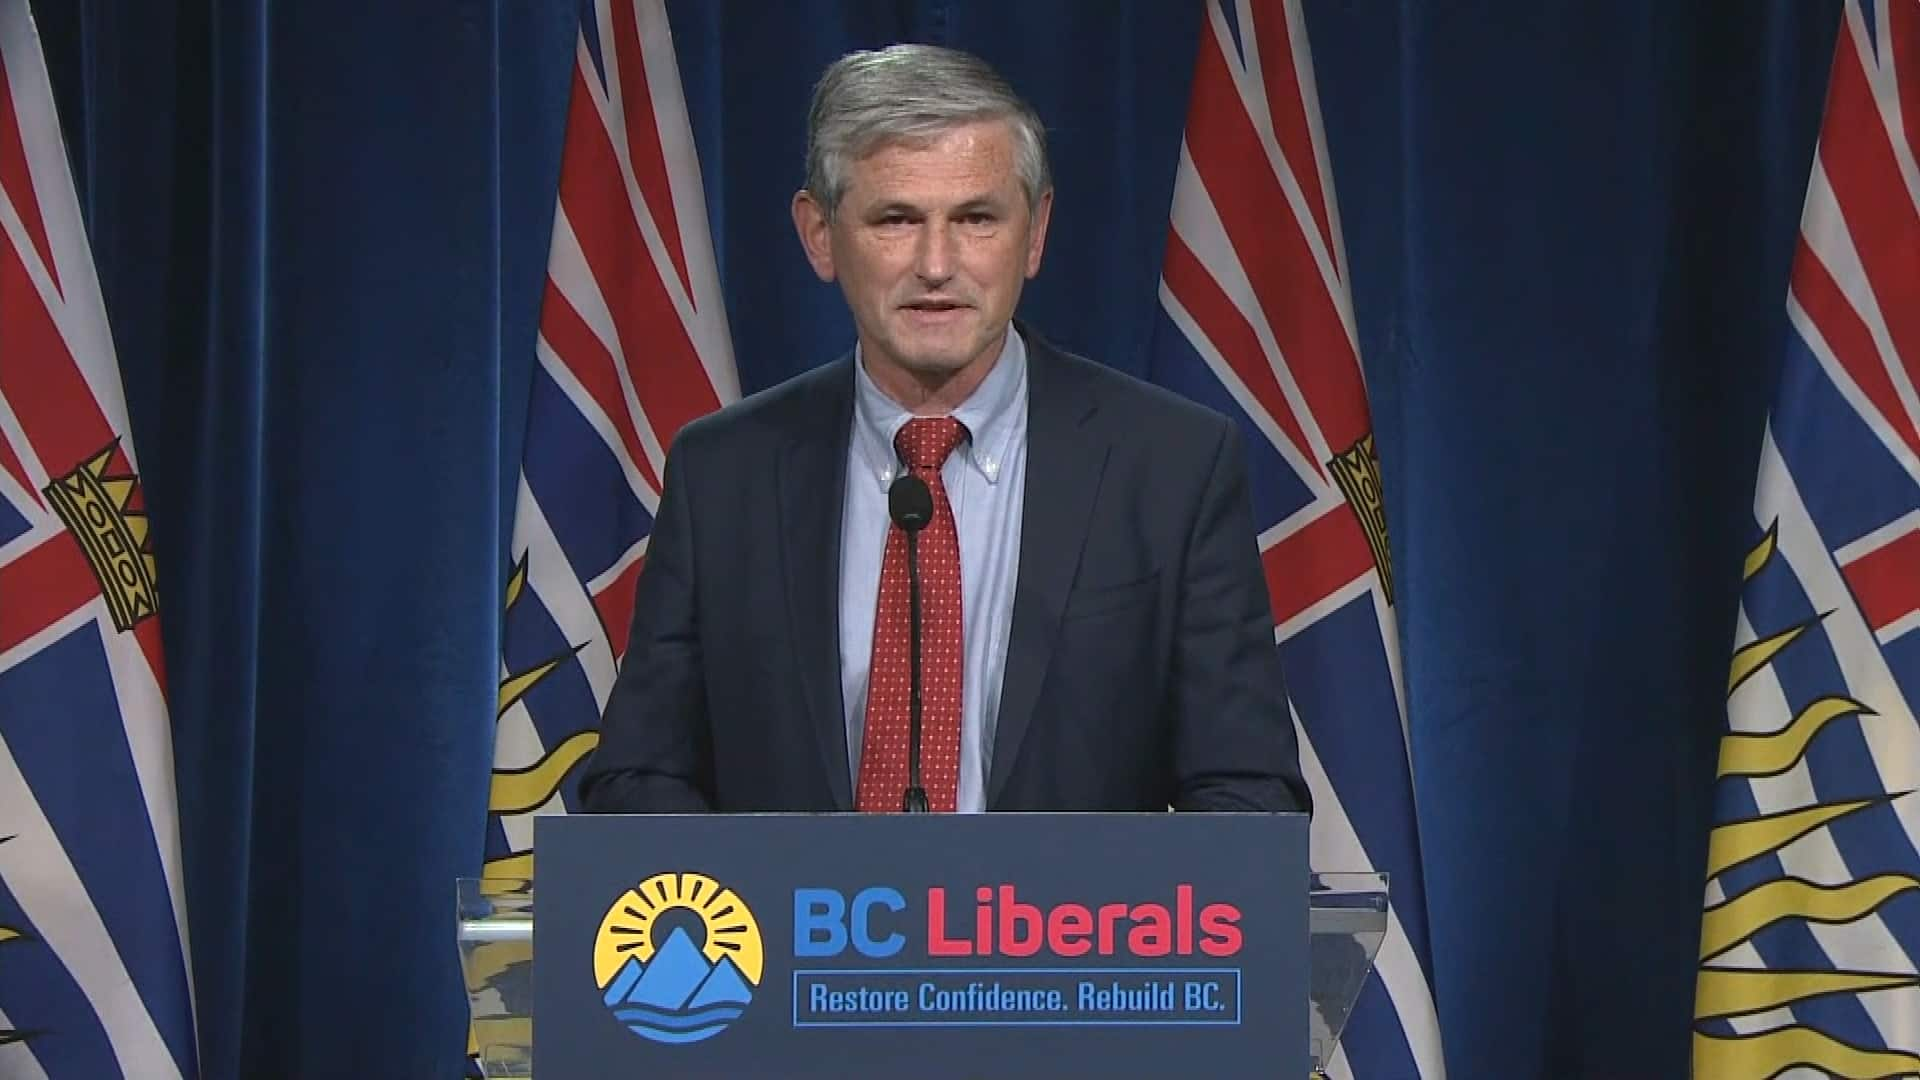 Andrew Wilkinson resigning as B.C. Liberal leader after worst party showing in Years thumbnail